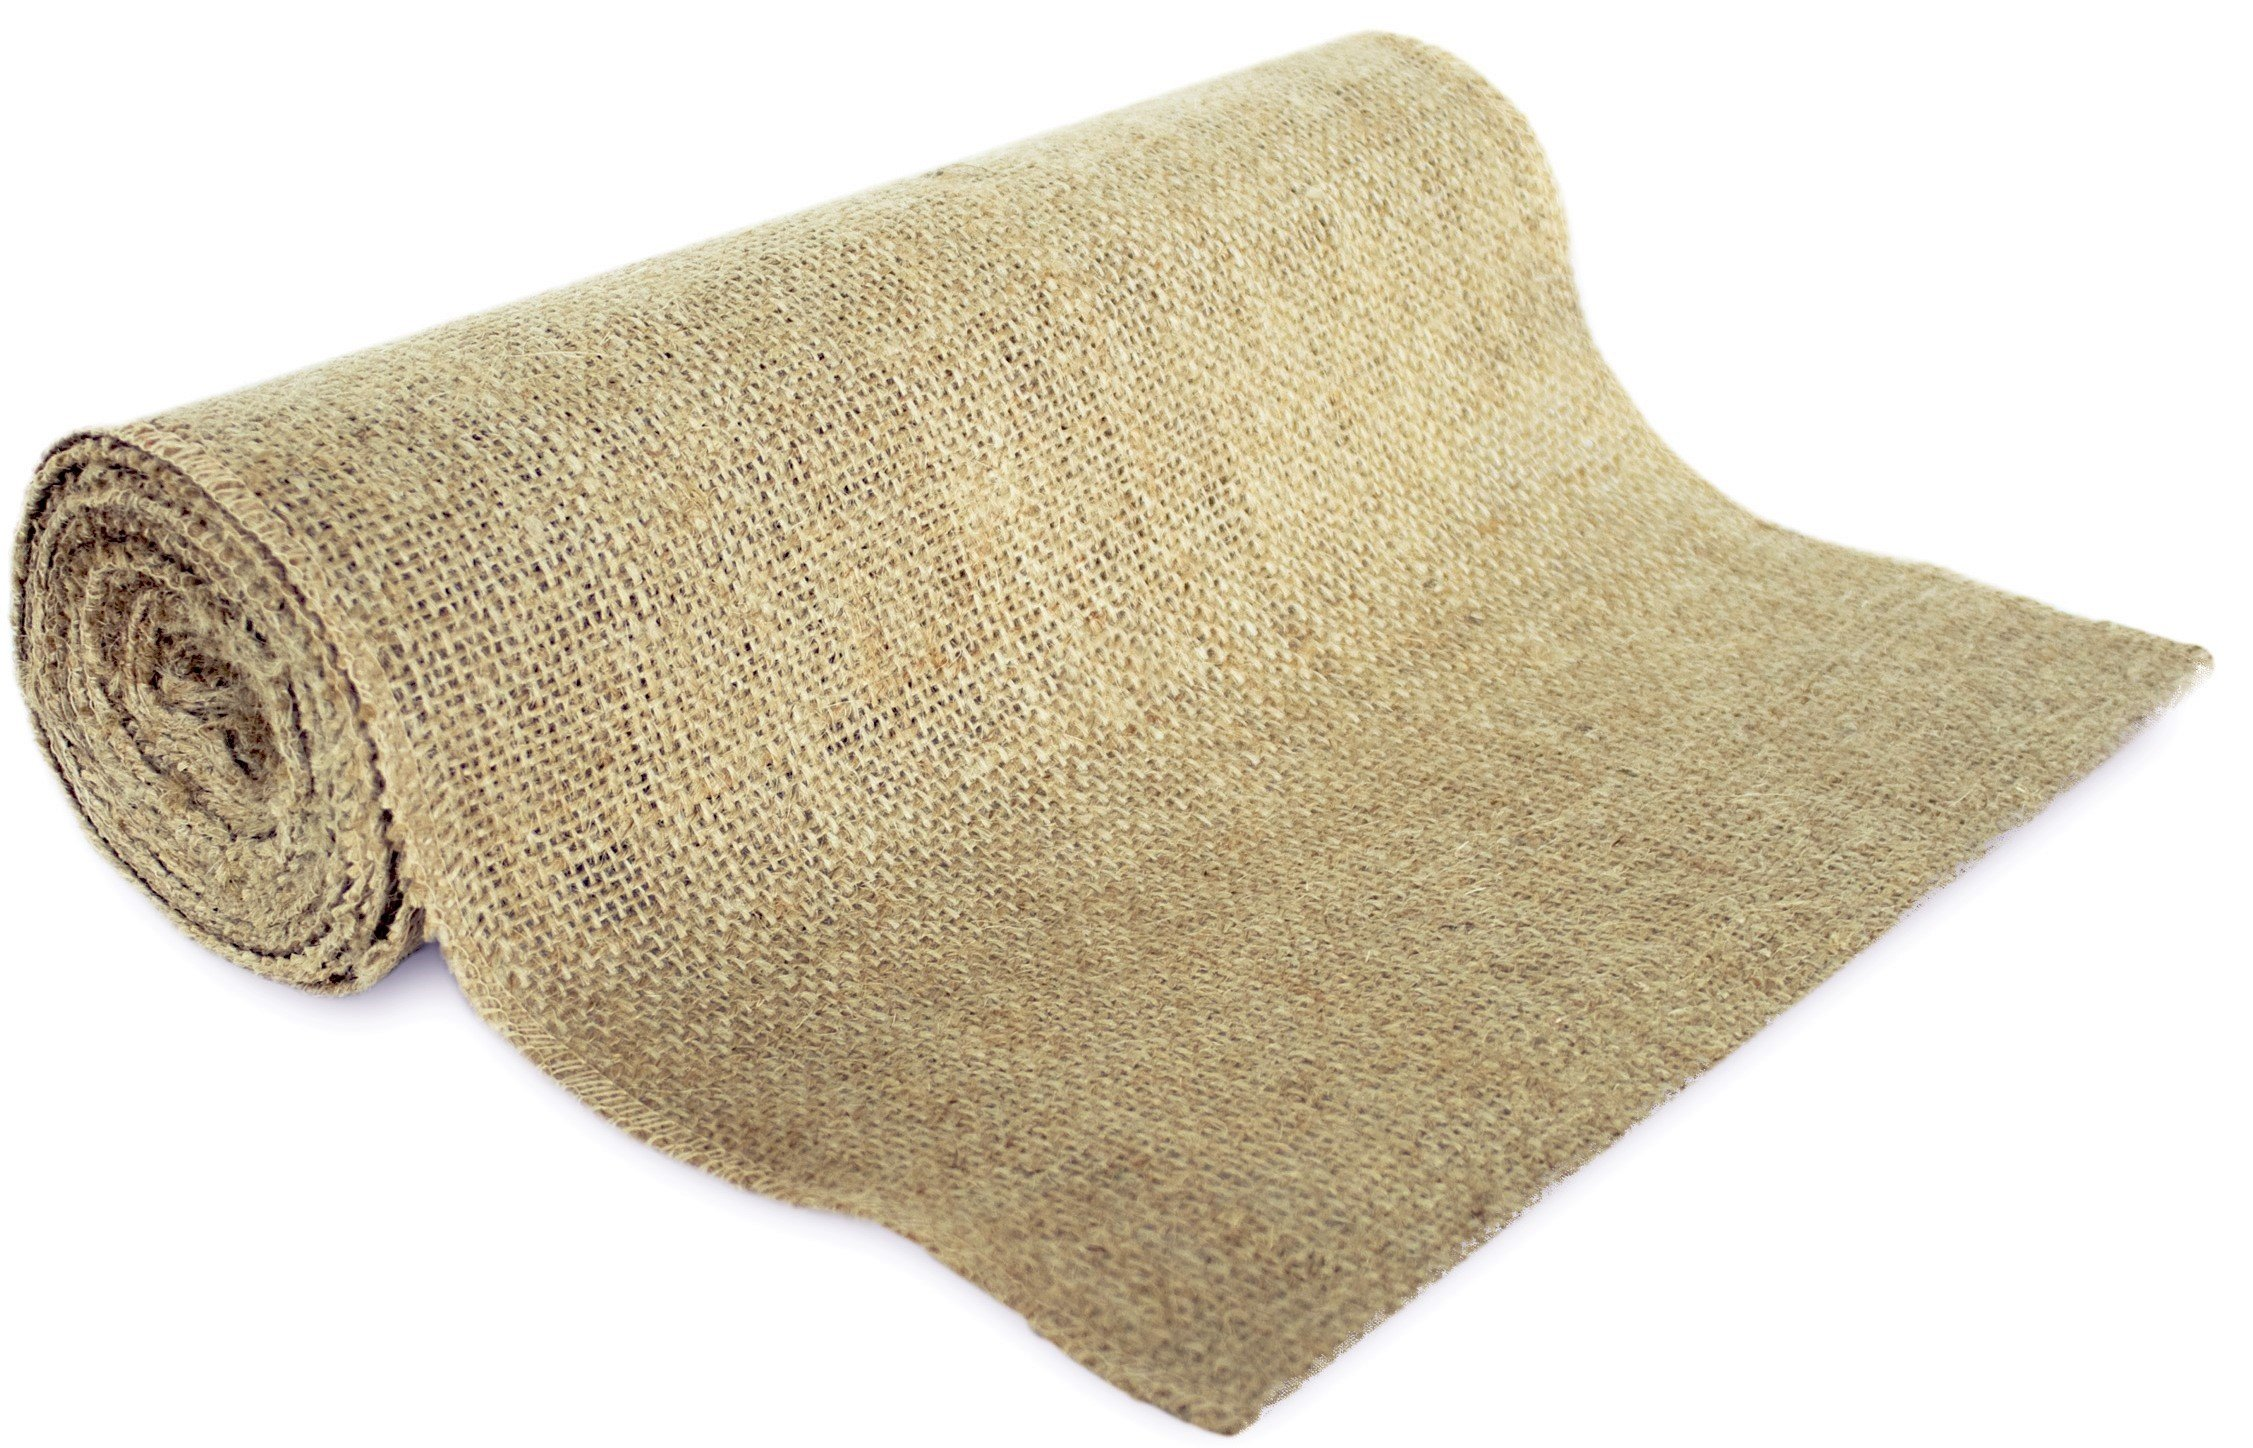 14'' No-Fray Burlap Roll Table Runner, 14 inches by 10 yards, Placemat, Craft Fabric